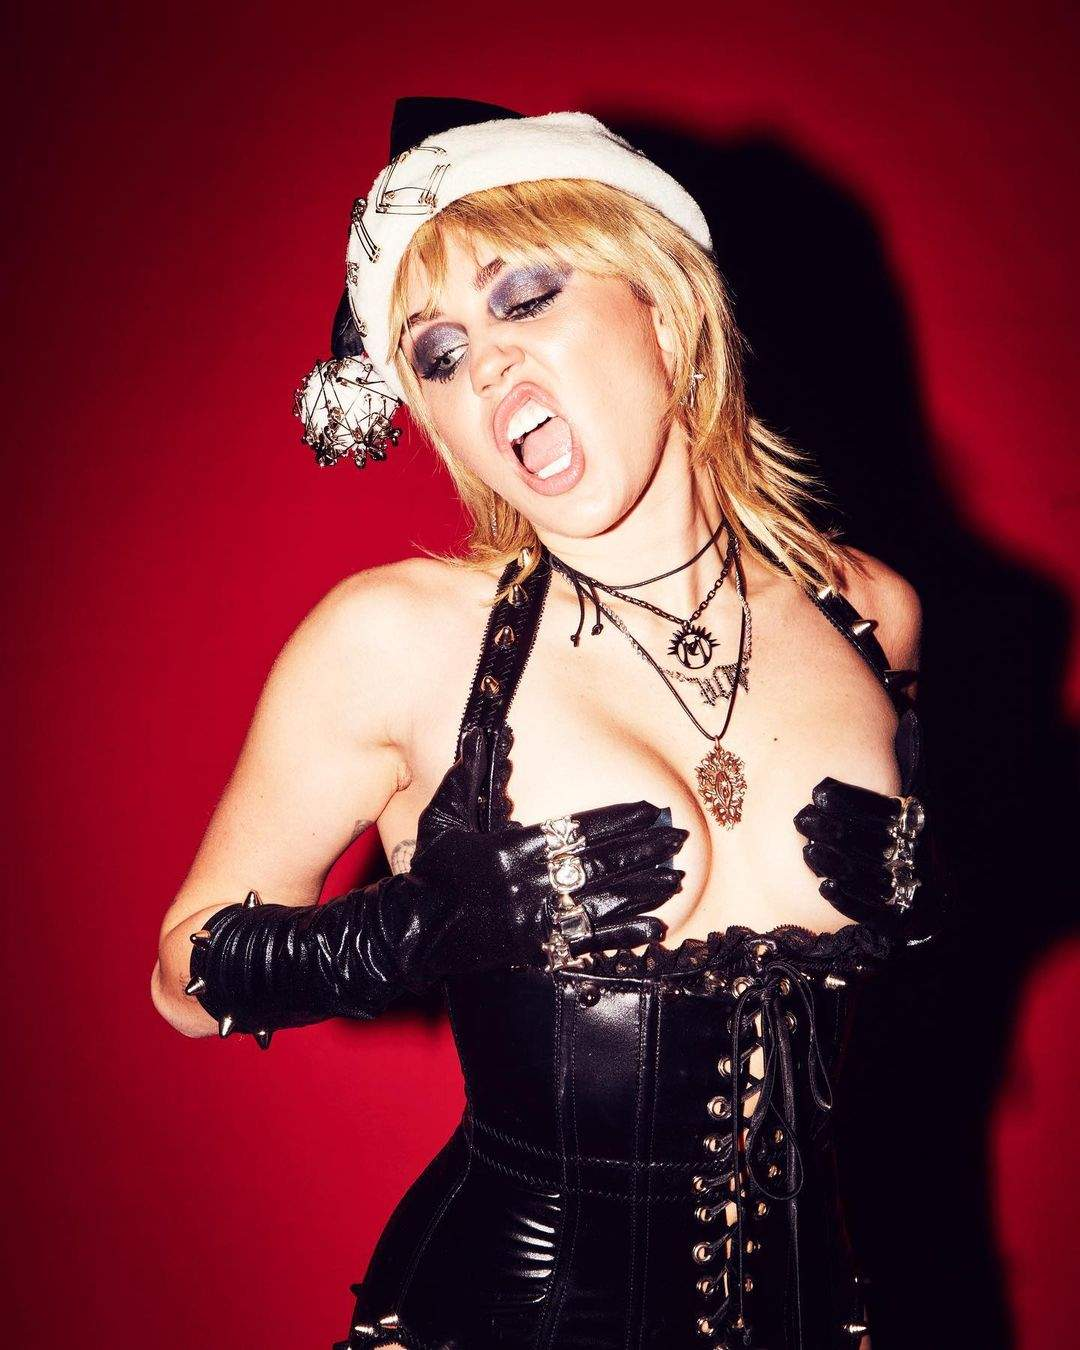 You are currently viewing Miley Cyrus Naked & BDSM Outfit Photos